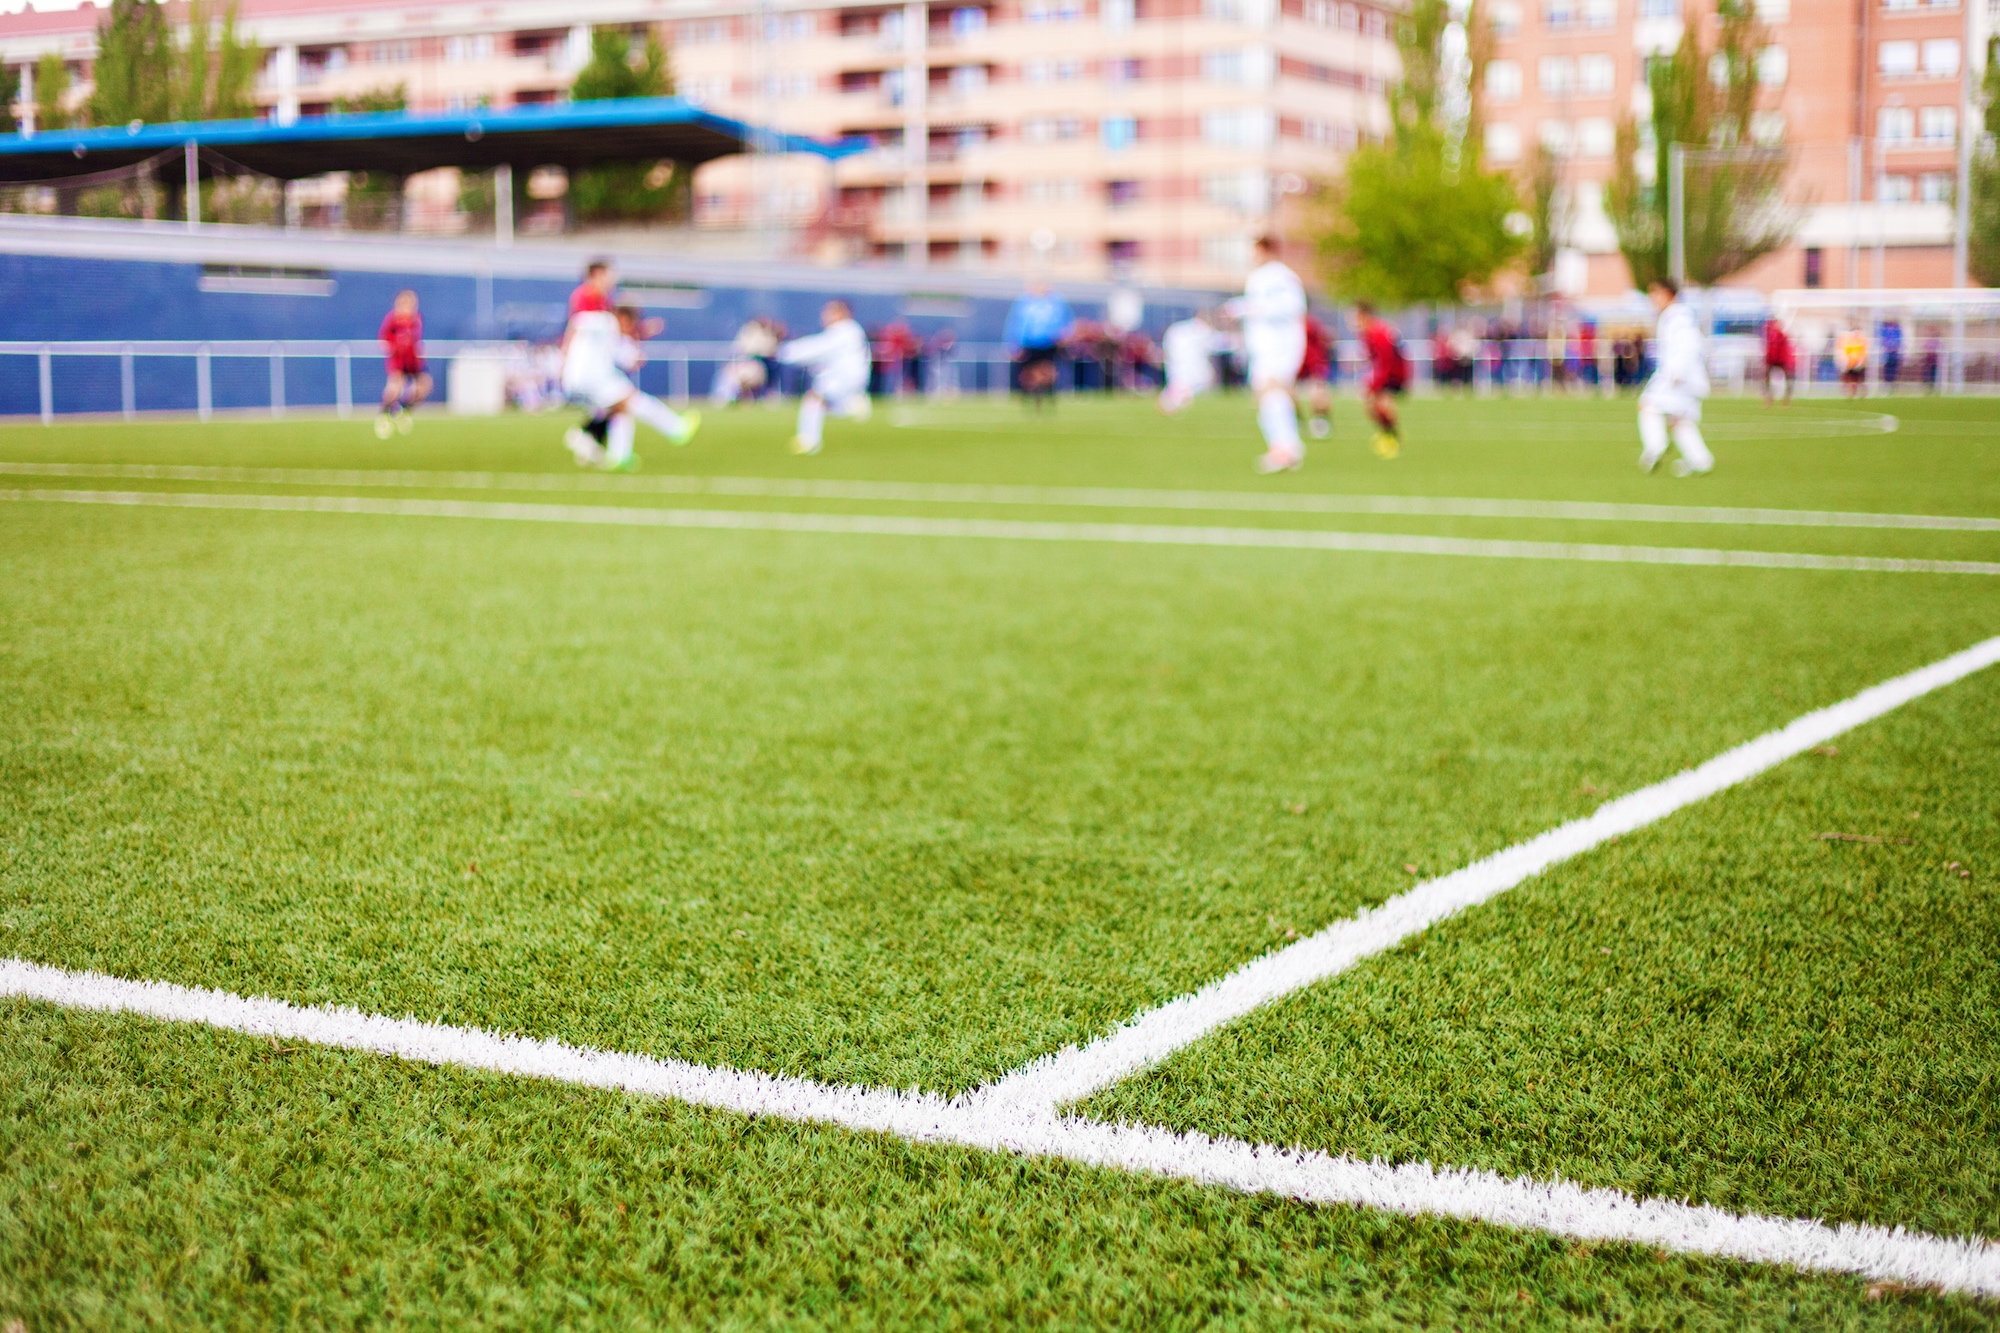 These Are the 6 Best Places to Play Pickup Soccer in NYC